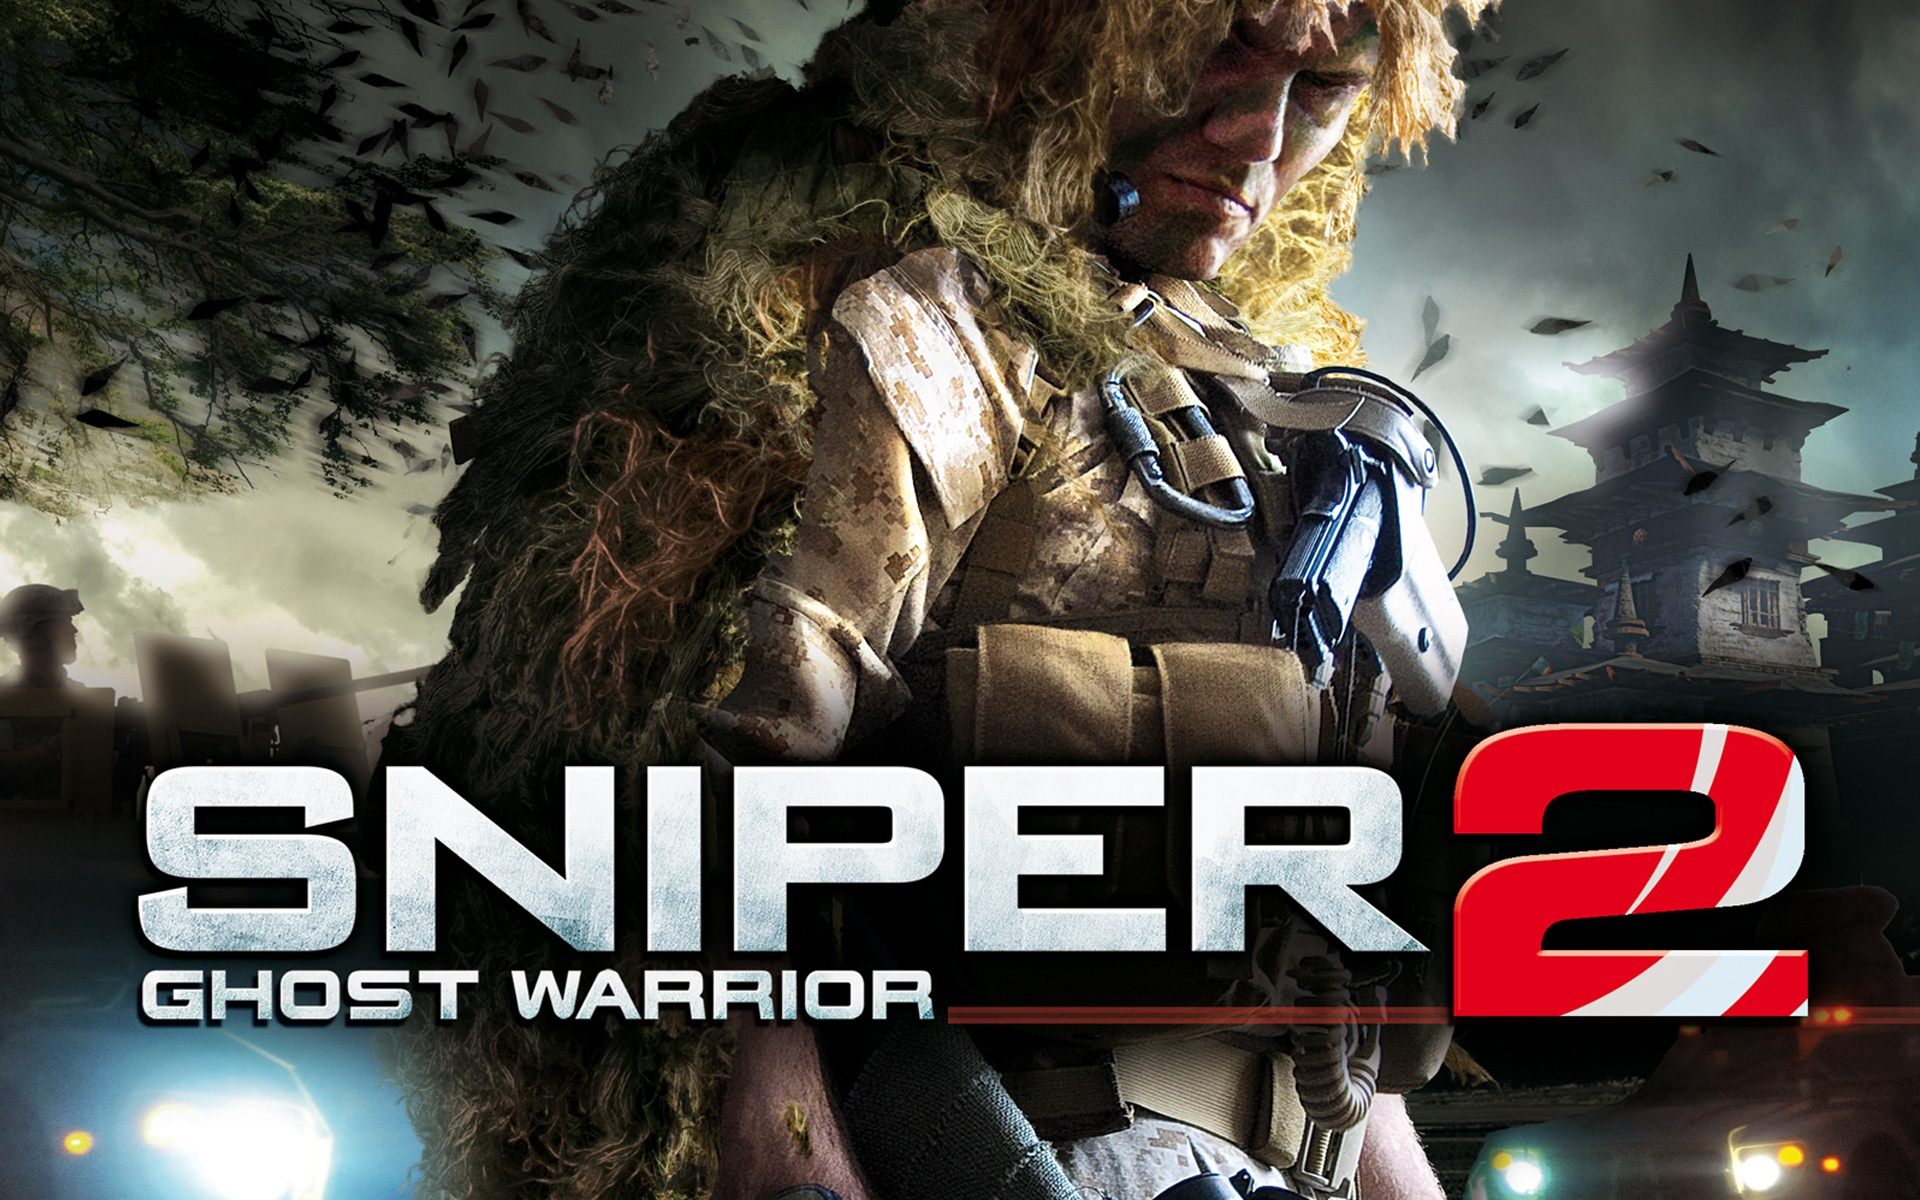 Sniper Ghost Warrior 2 – XBOX 360